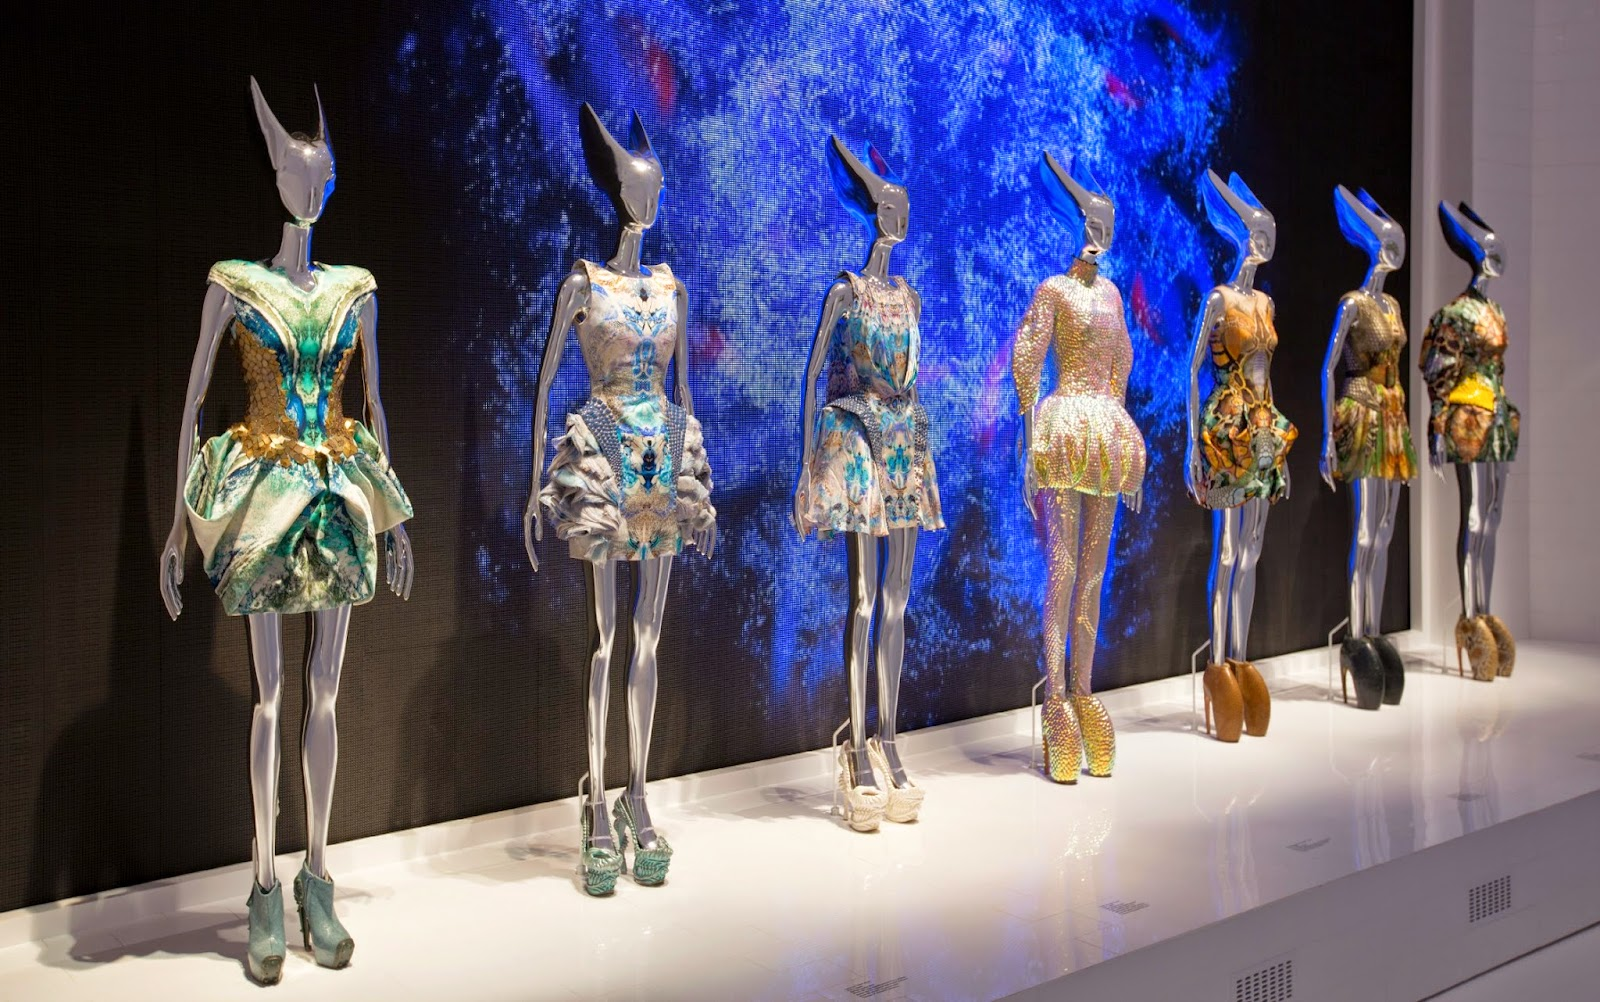 Installation view of Platos Atlantis gallery Alexander McQueen Savage Beauty at the Victoria and Albert Museum London